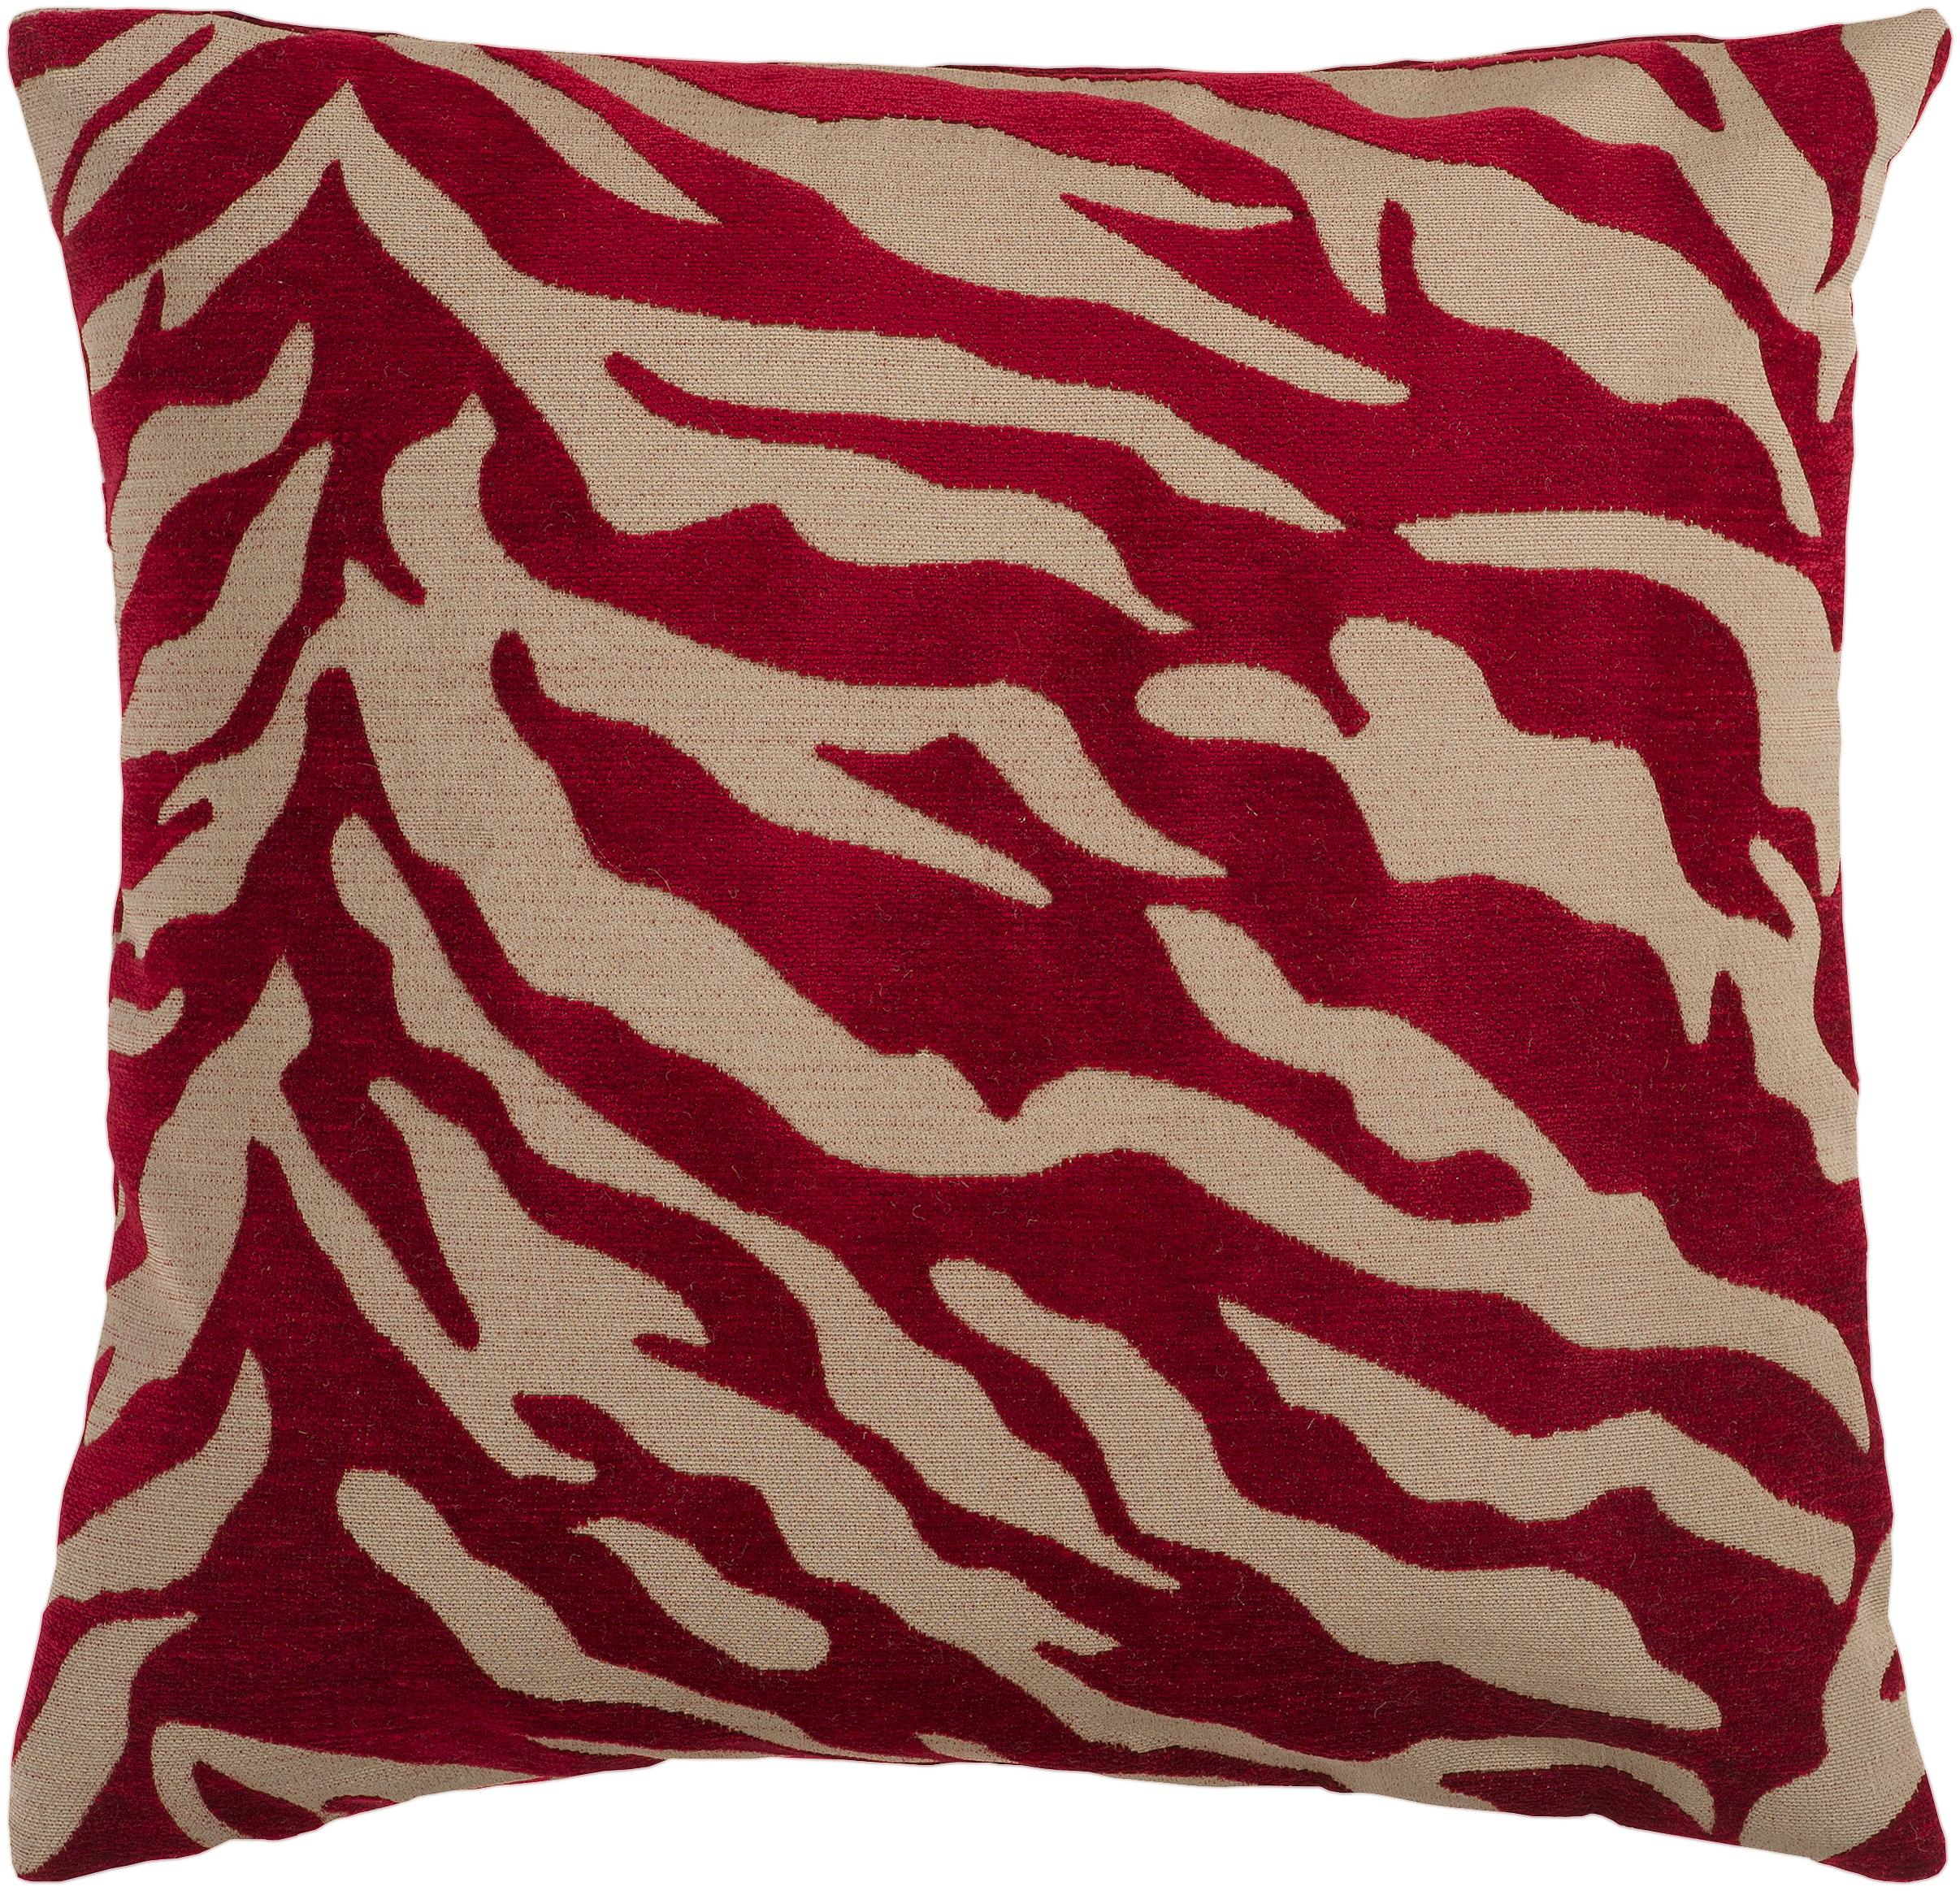 "Surya Rugs Pillows 18"" x 18"" Pillow - Item Number: JS026-1818P"